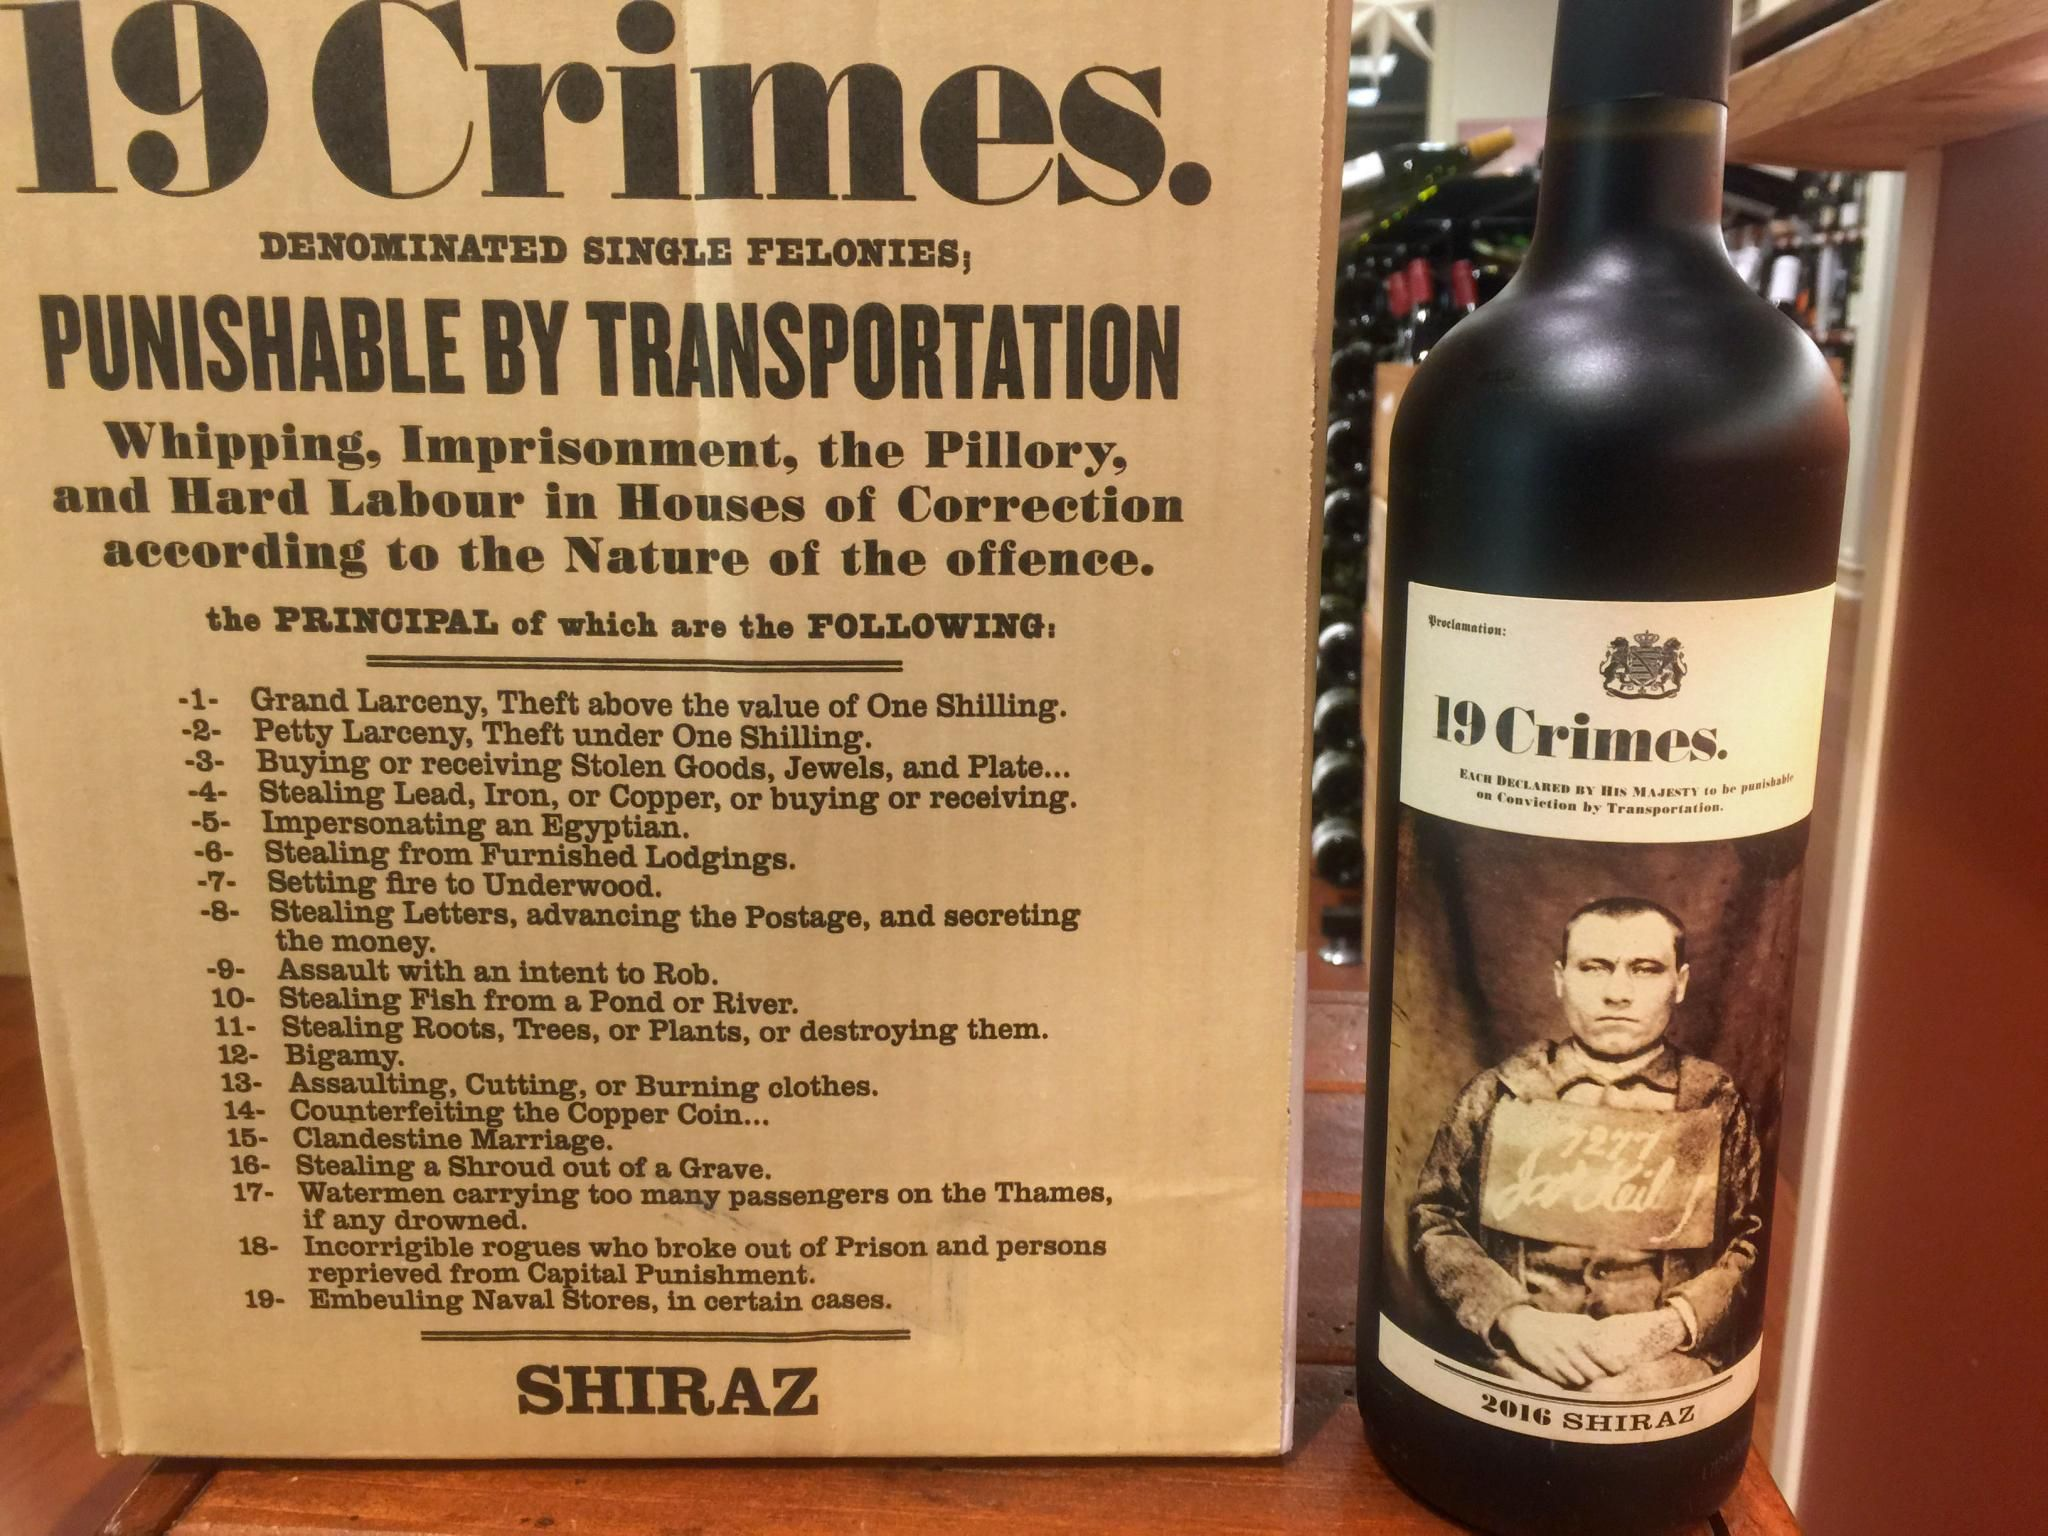 19 Crimes is one of our bestselling wines and now they